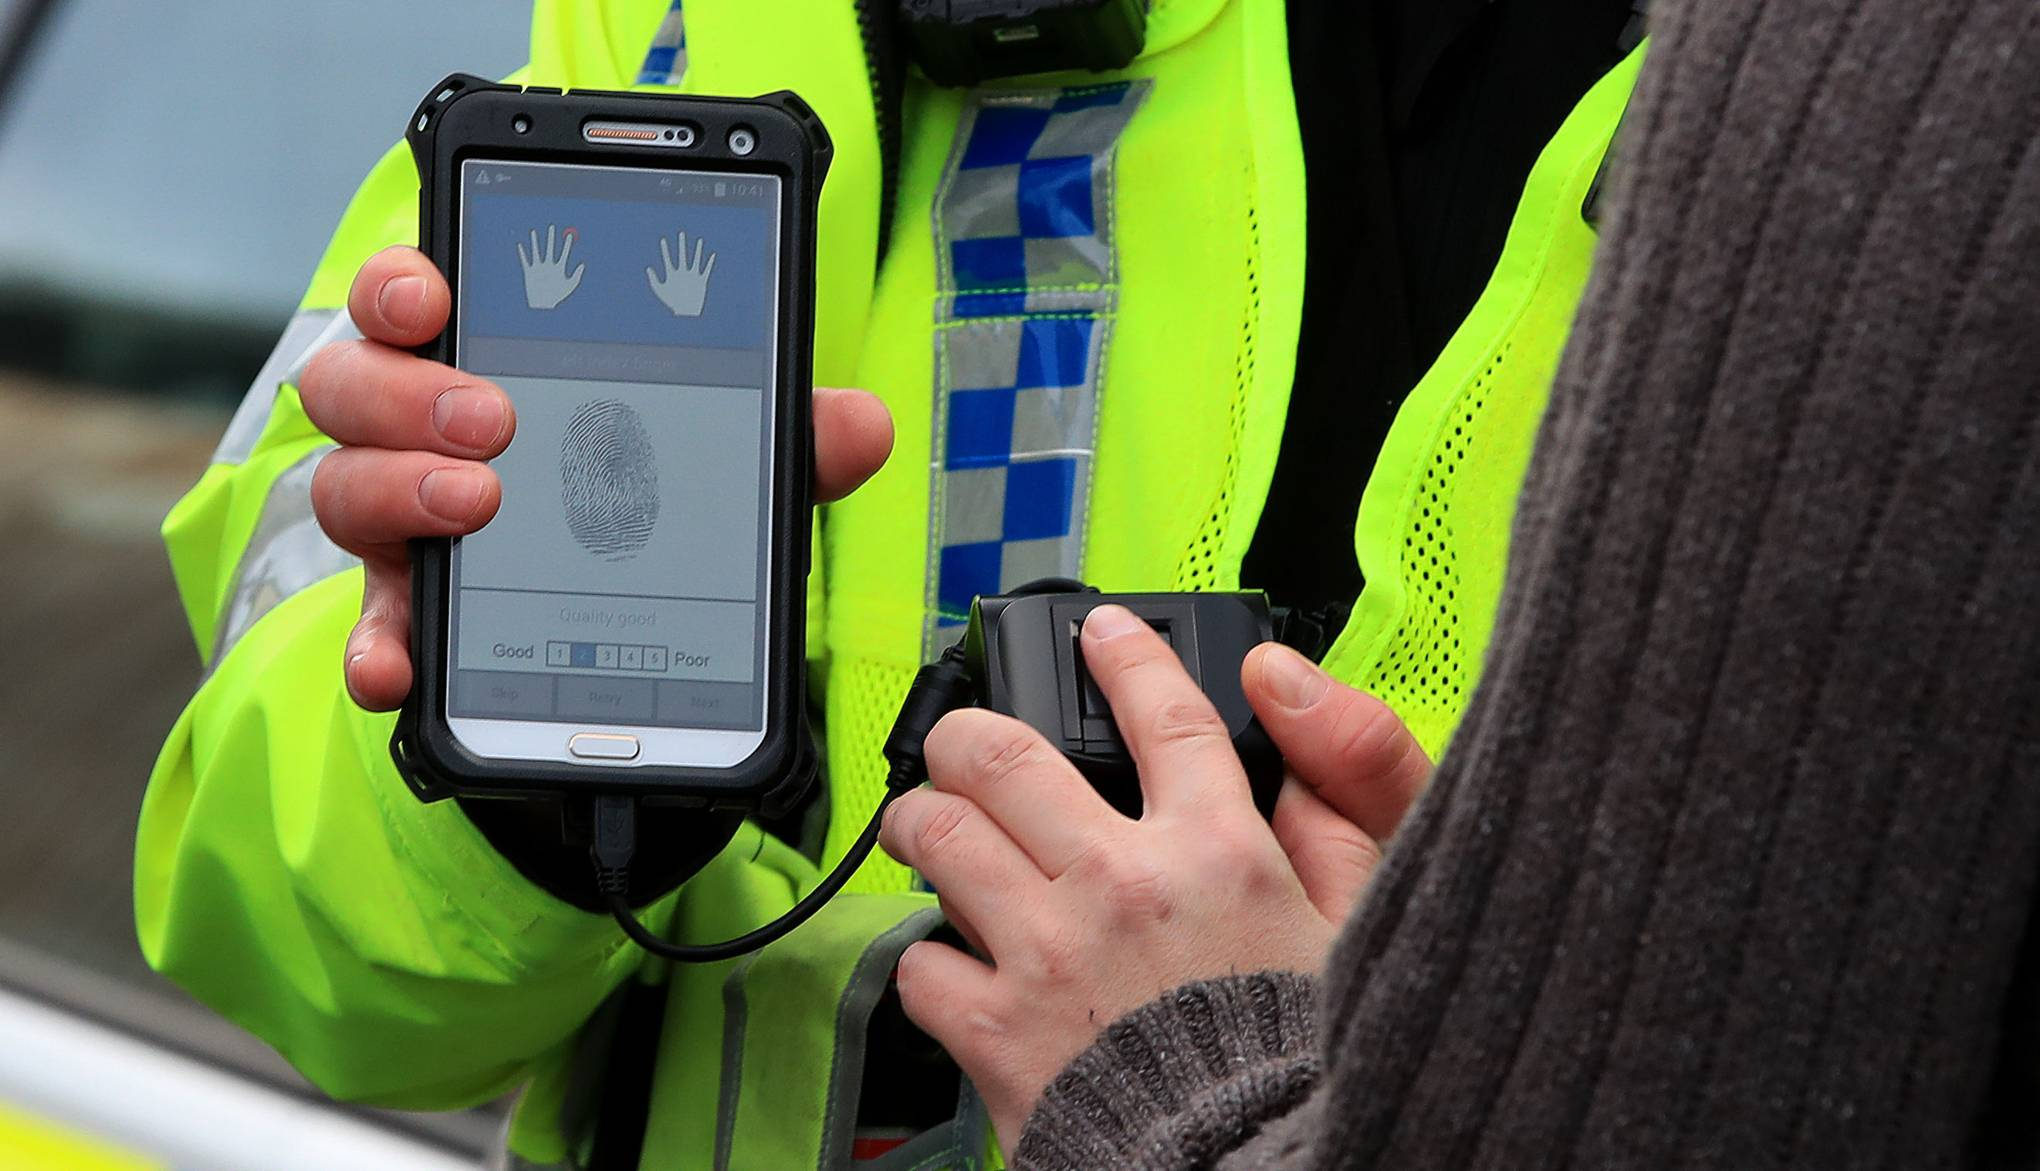 UK police are now using fingerprint scanners on the streets